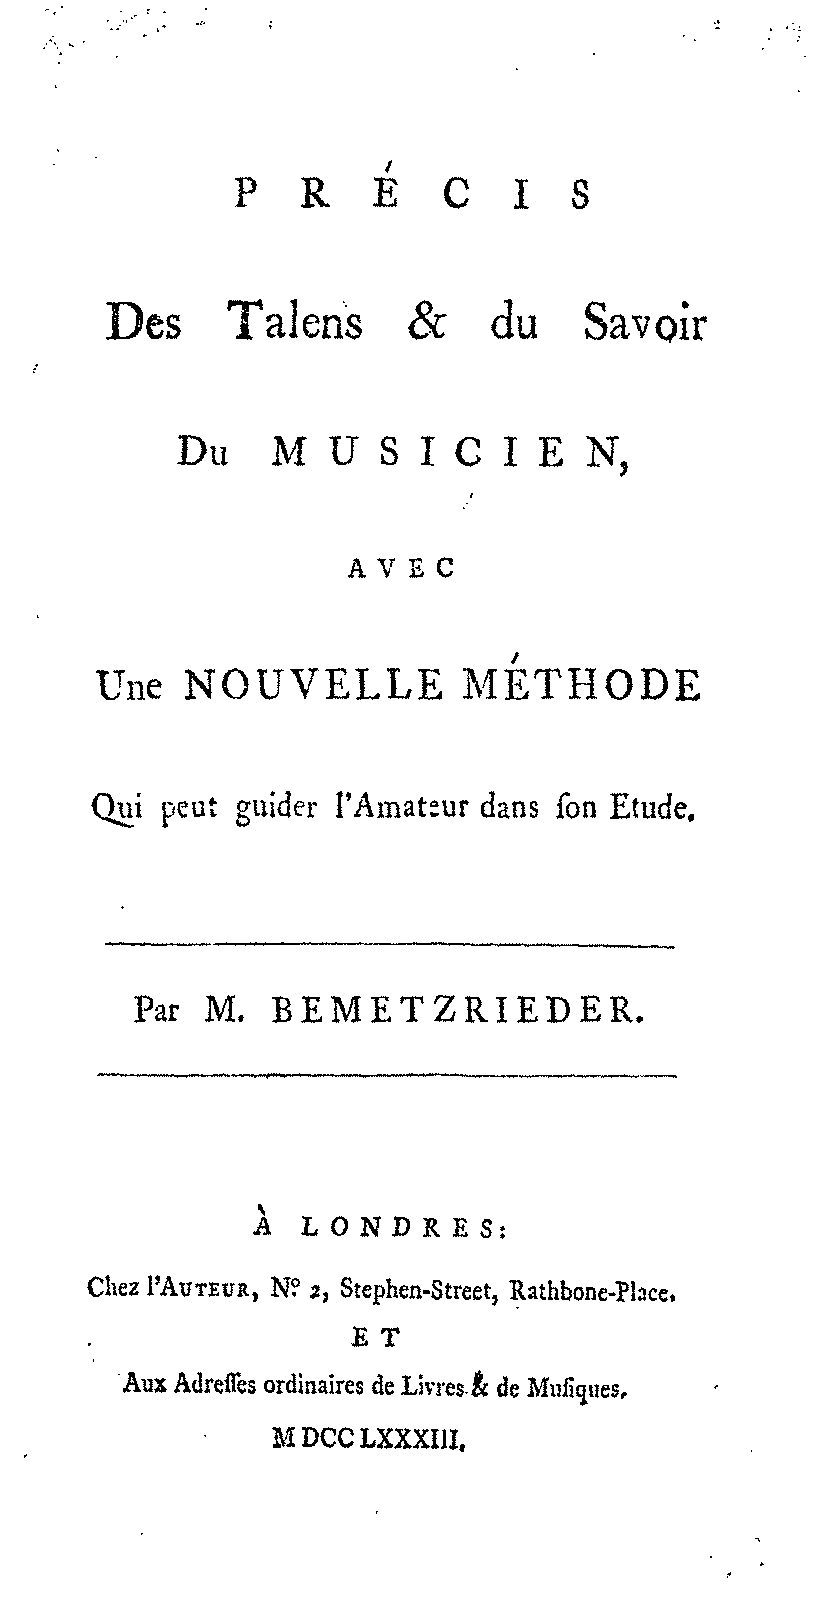 PMLP139964-bemetzrieder Abstract of the talents and knowledge french 1783.pdf